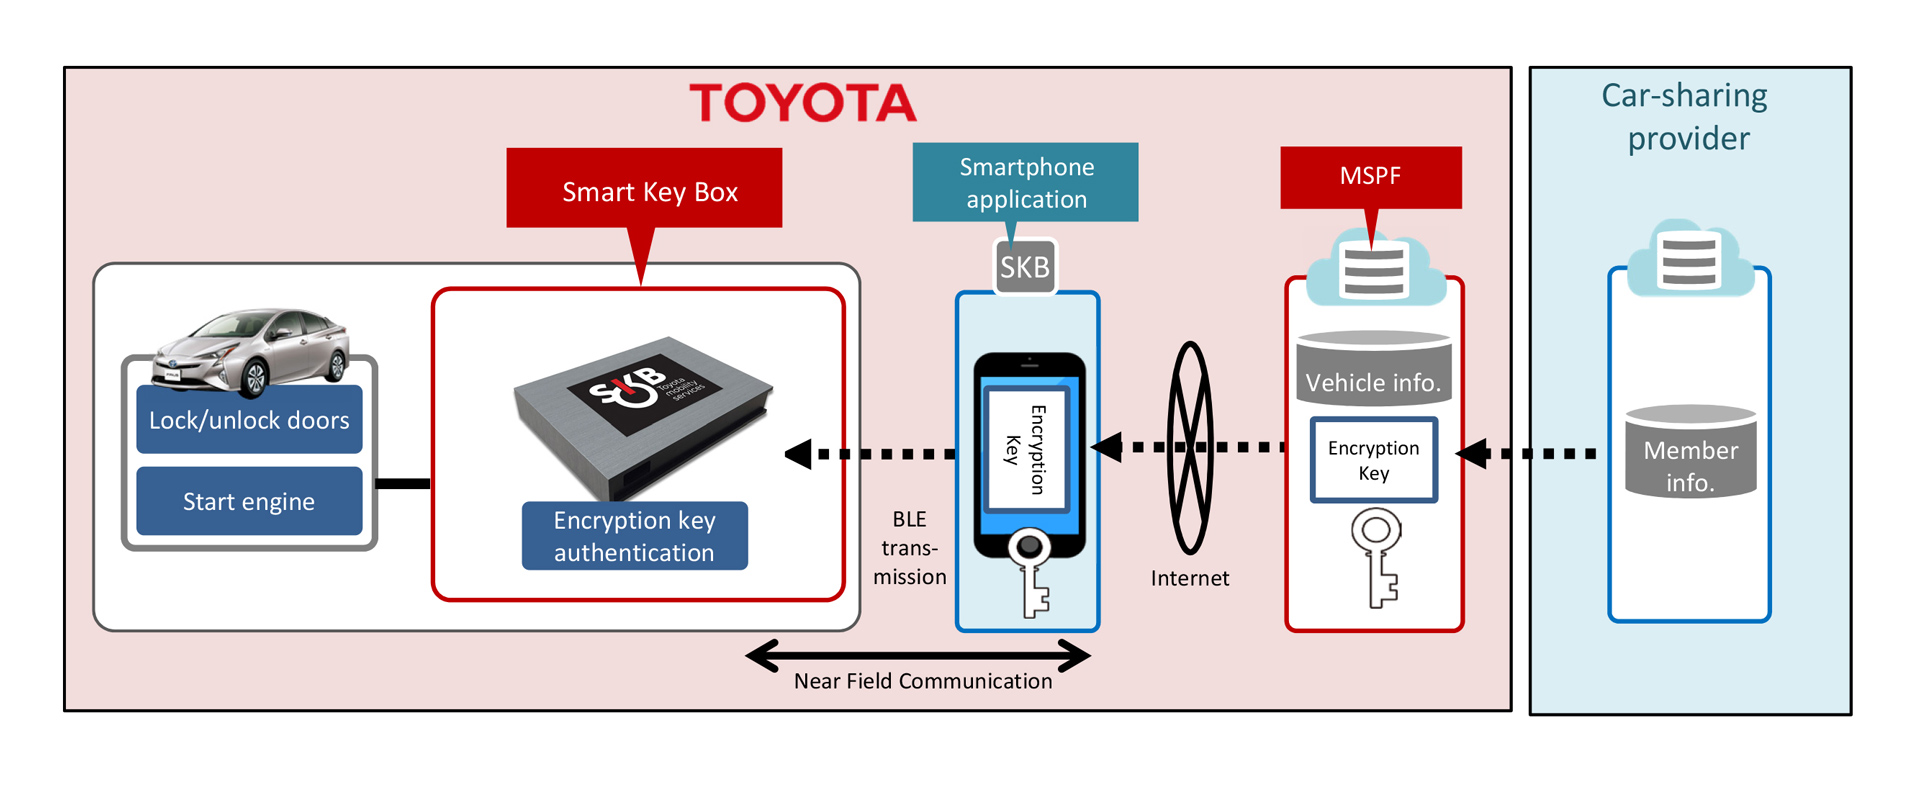 Outline of Smart Key Box Operation